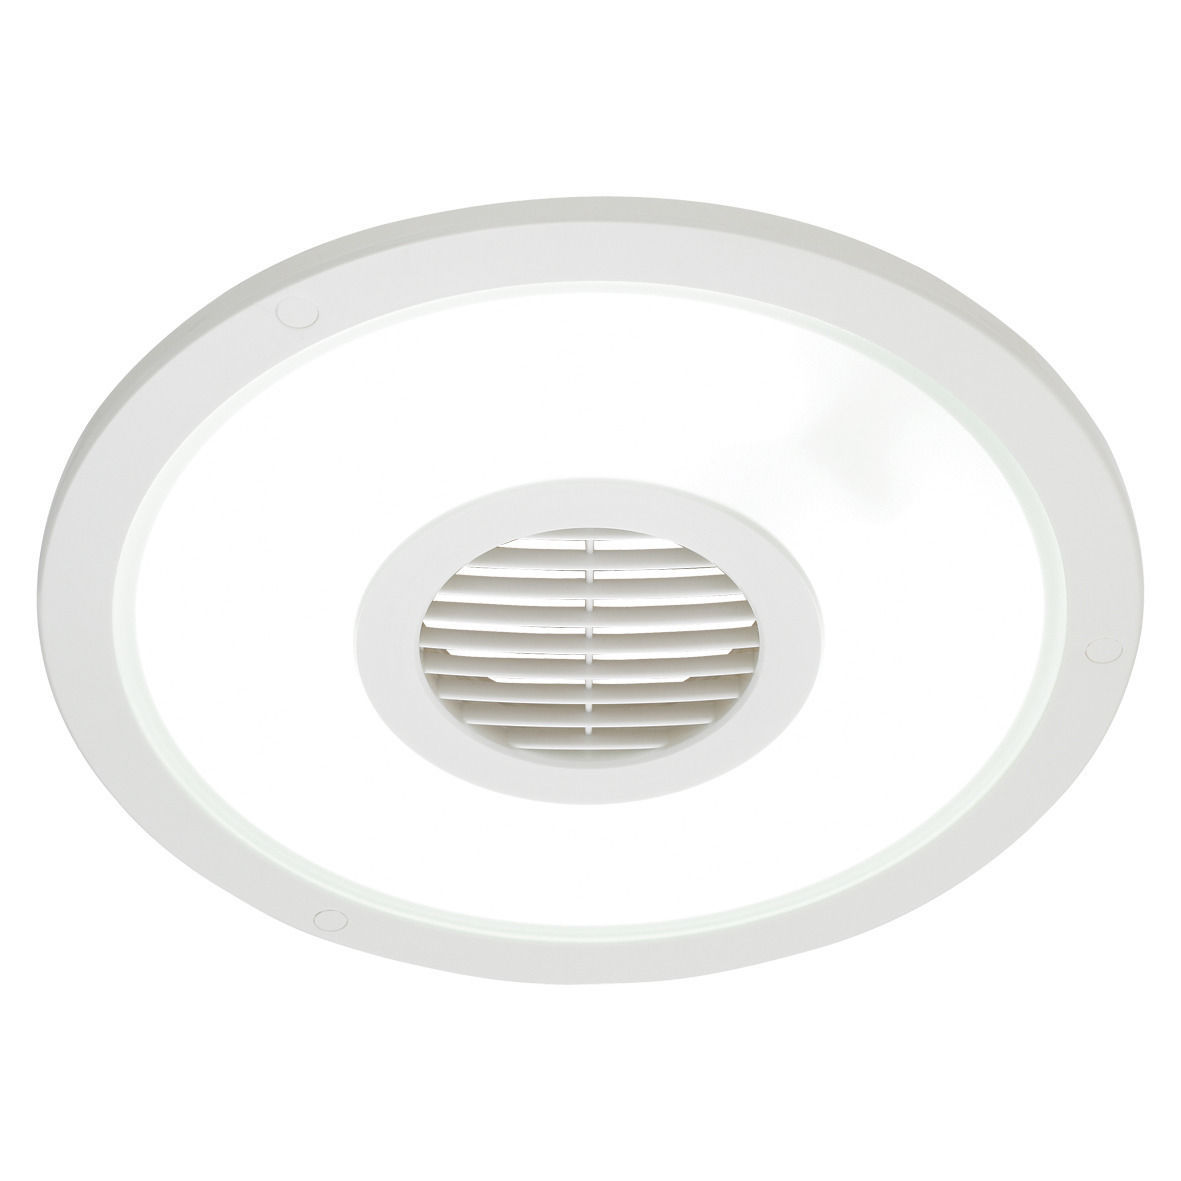 Heller White Round 250mm Ceiling Light Exhaust Fan Air Flow Bathroom Laundry Ebay